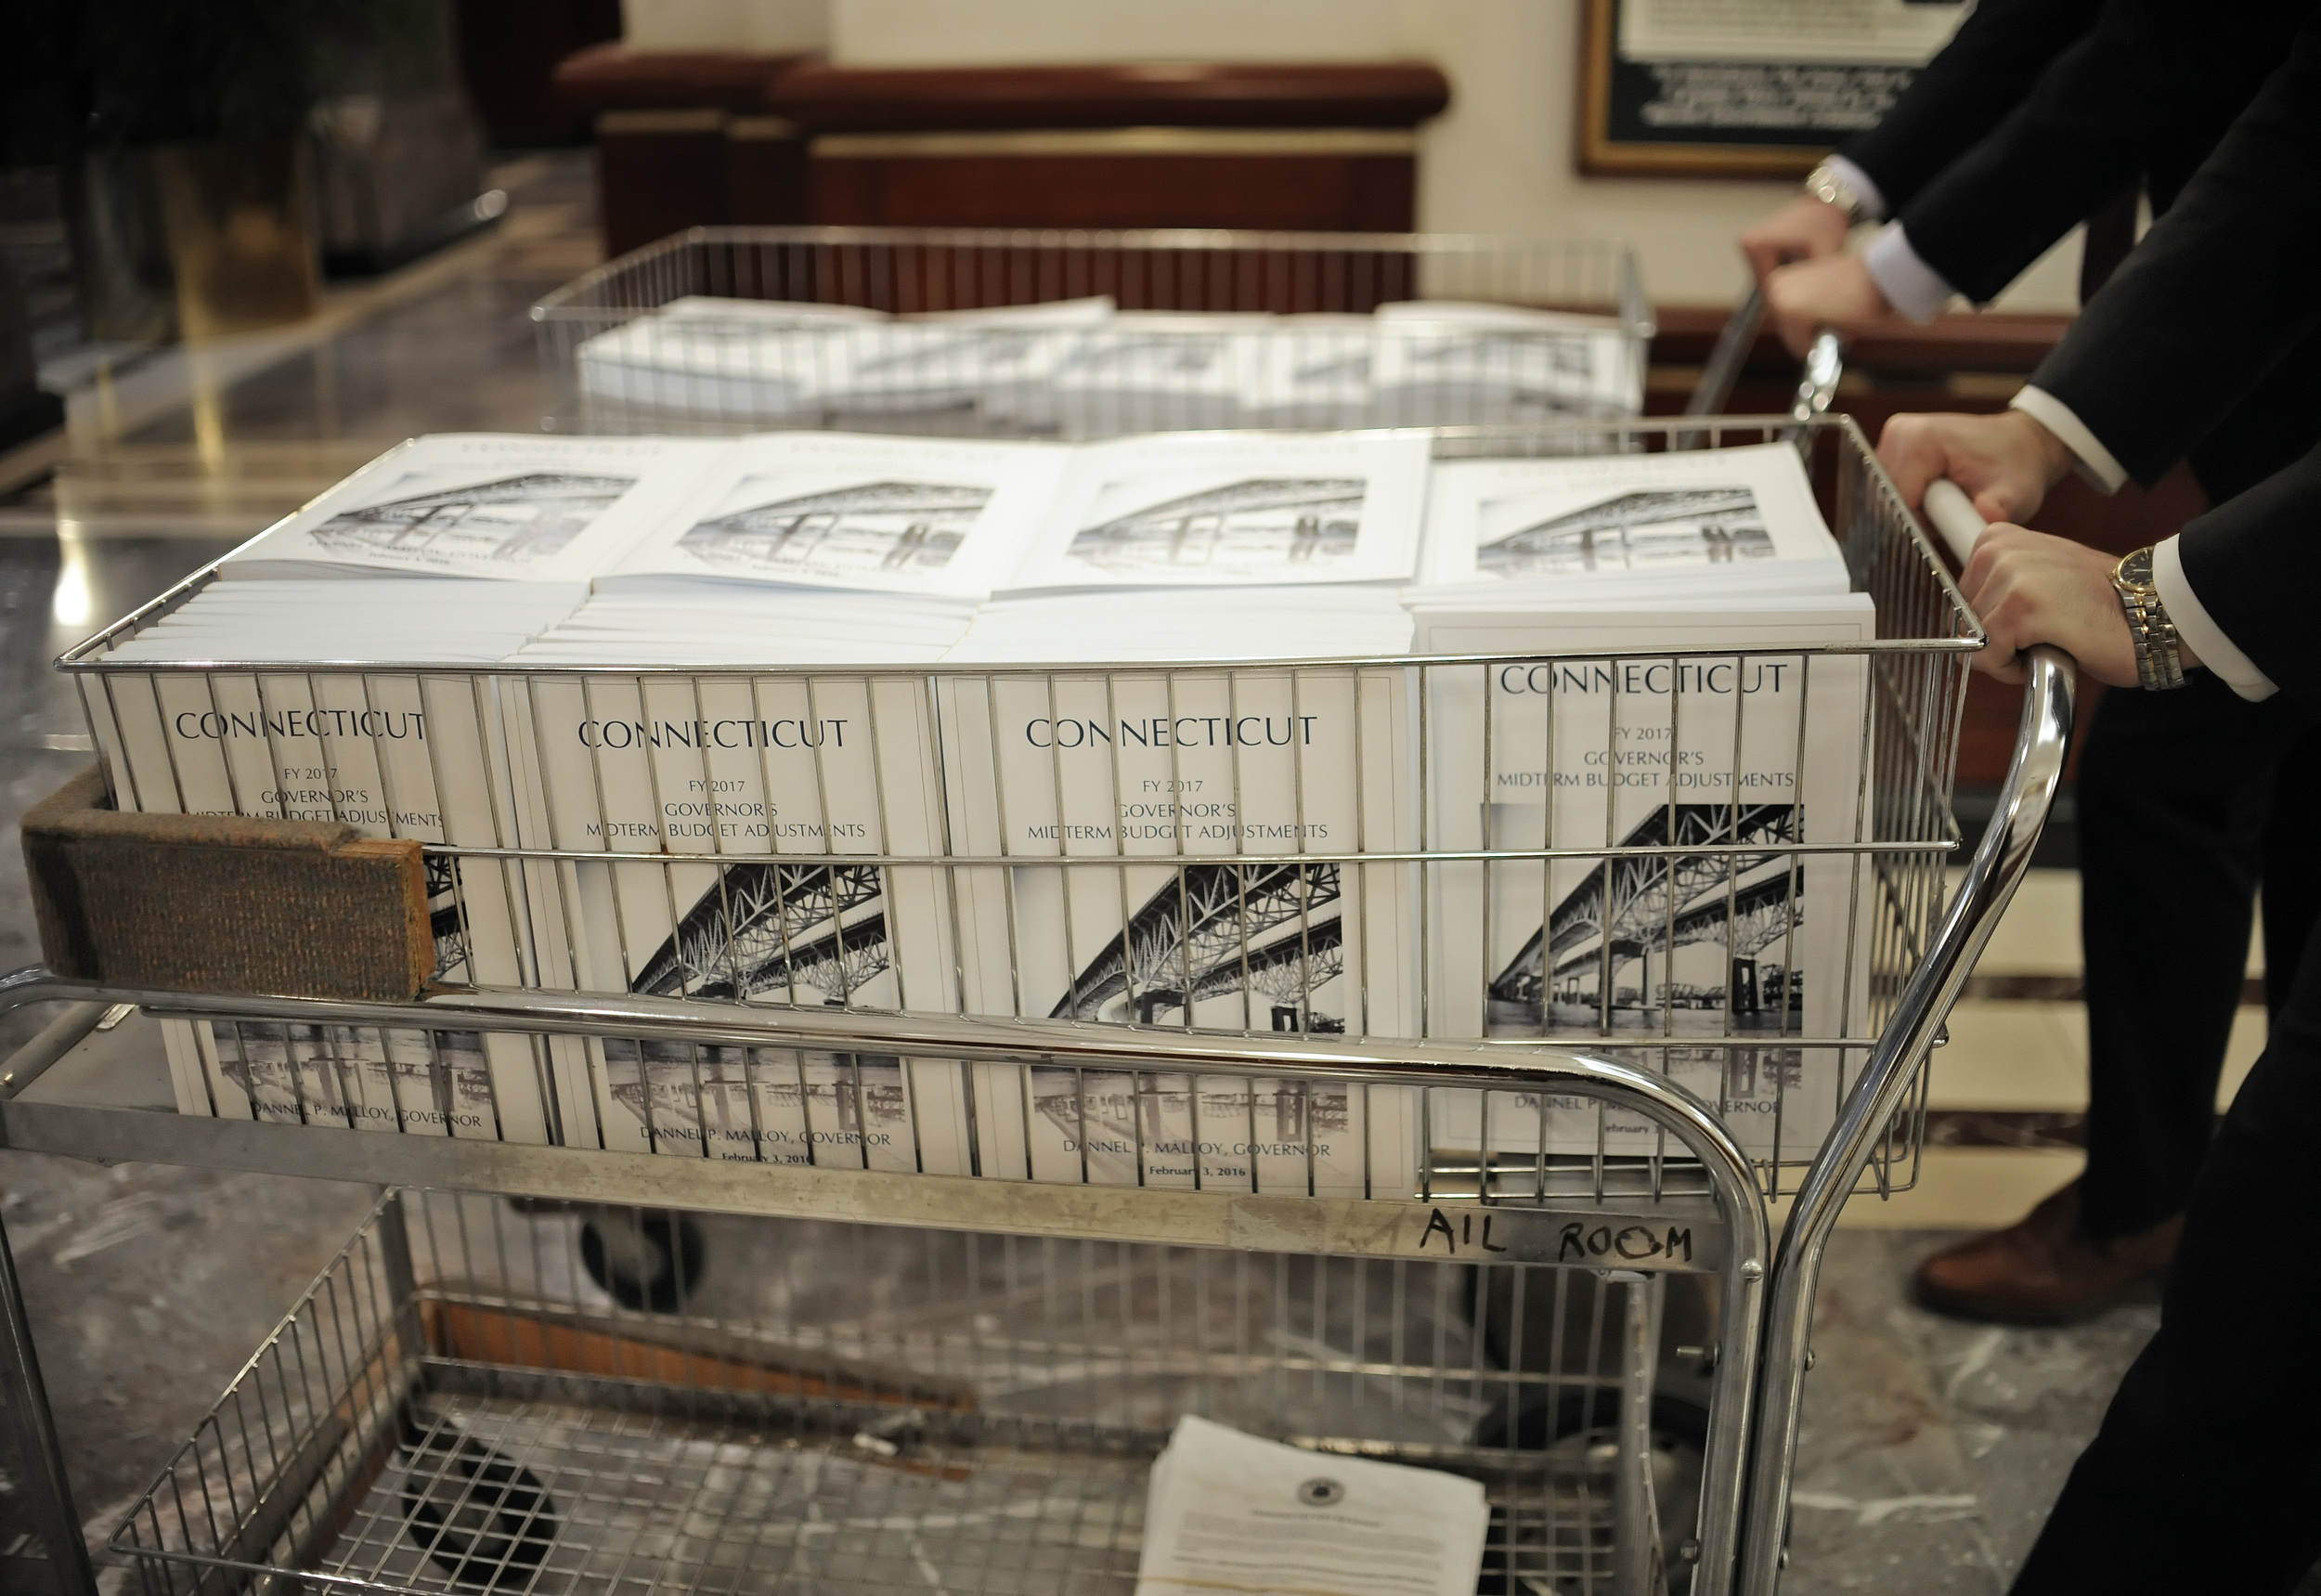 Legislative aides push copies of Connecticut's budget plan through the Legislative Office Building, Wednesday, Feb. 3, 2016, in Hartford, Conn. Connecticut Gov. Dannel P. Malloy is proposing to reduce spending for next fiscal year's budget by $569 million. (AP)